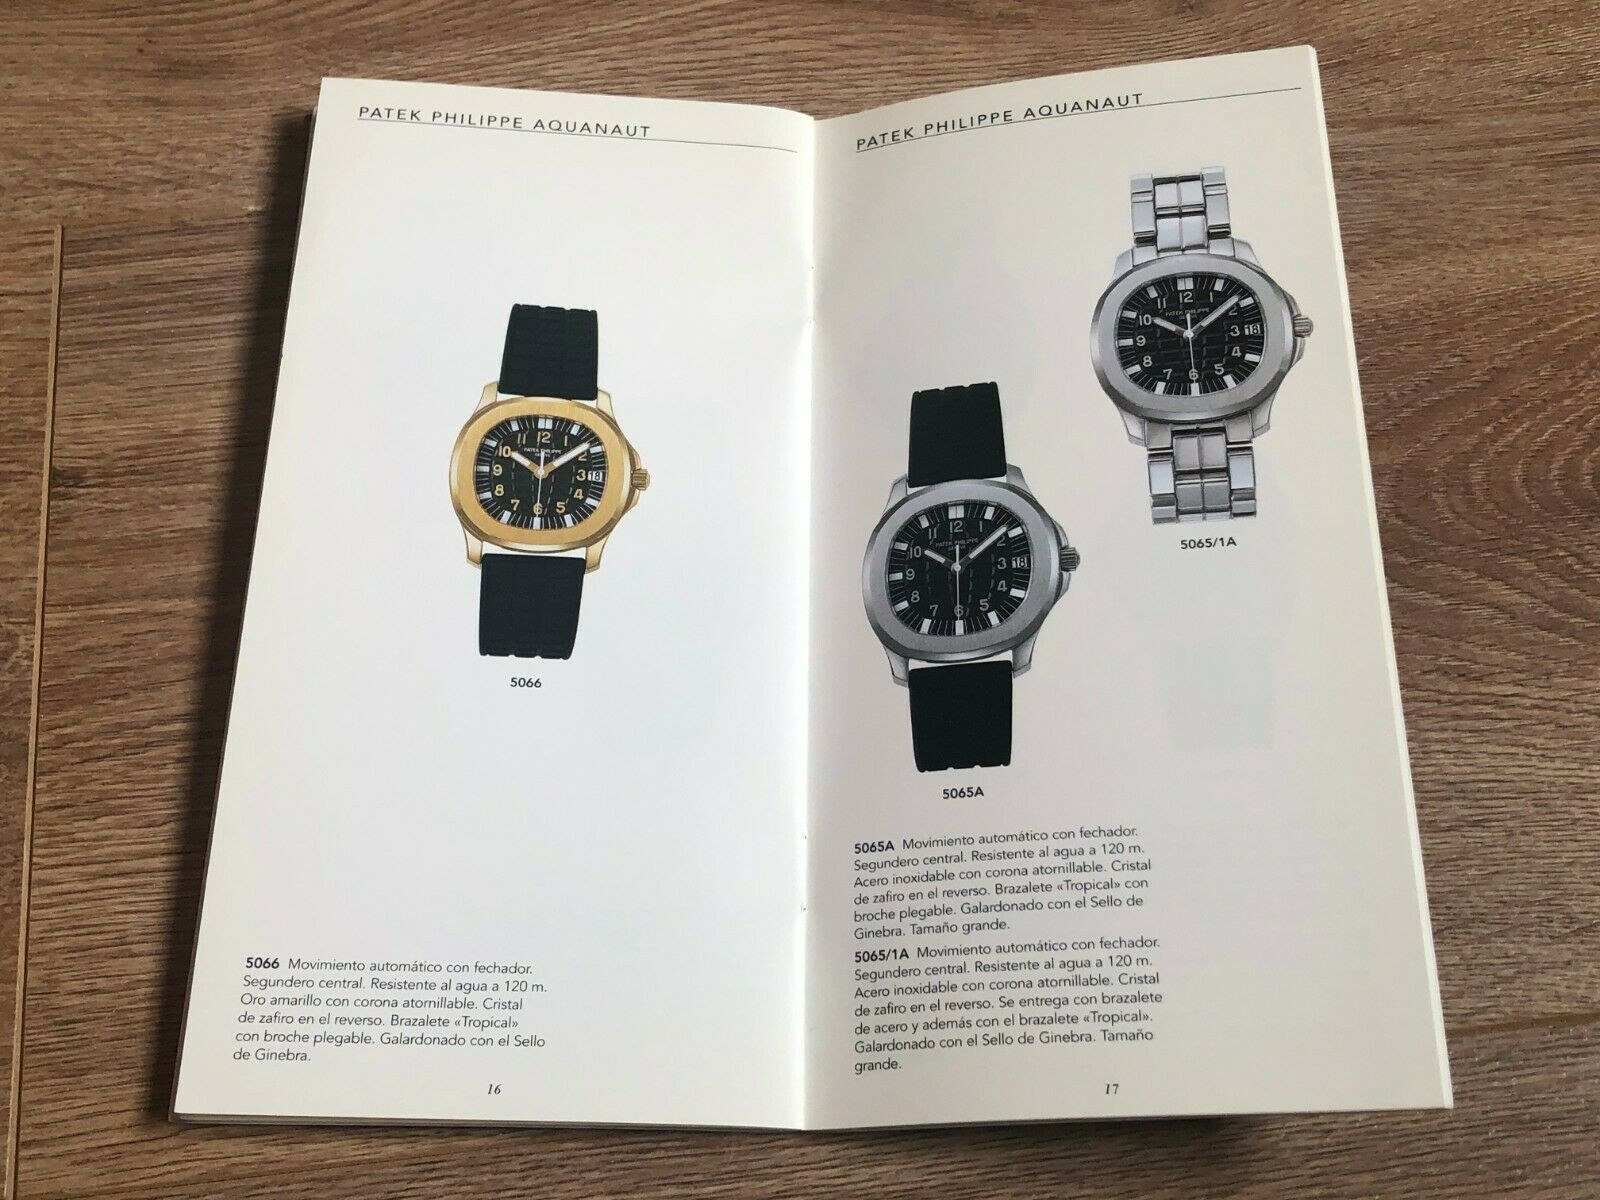 Patek Philippe Aquanaut appearing in a 1998 catalogue for A Collected Man London